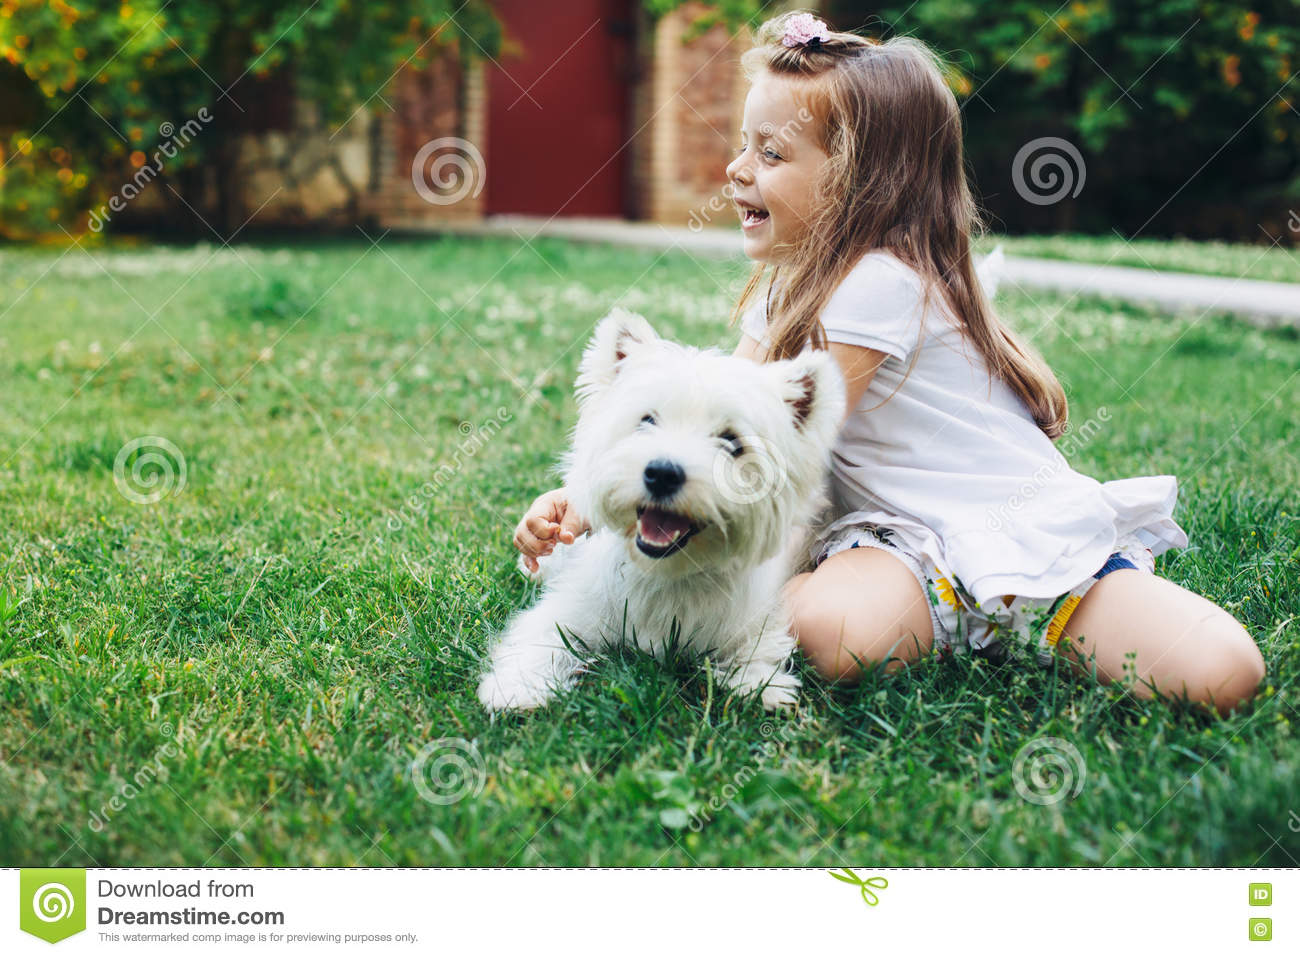 Download Child playing with dog stock image. Image of friend, grass - 74211073